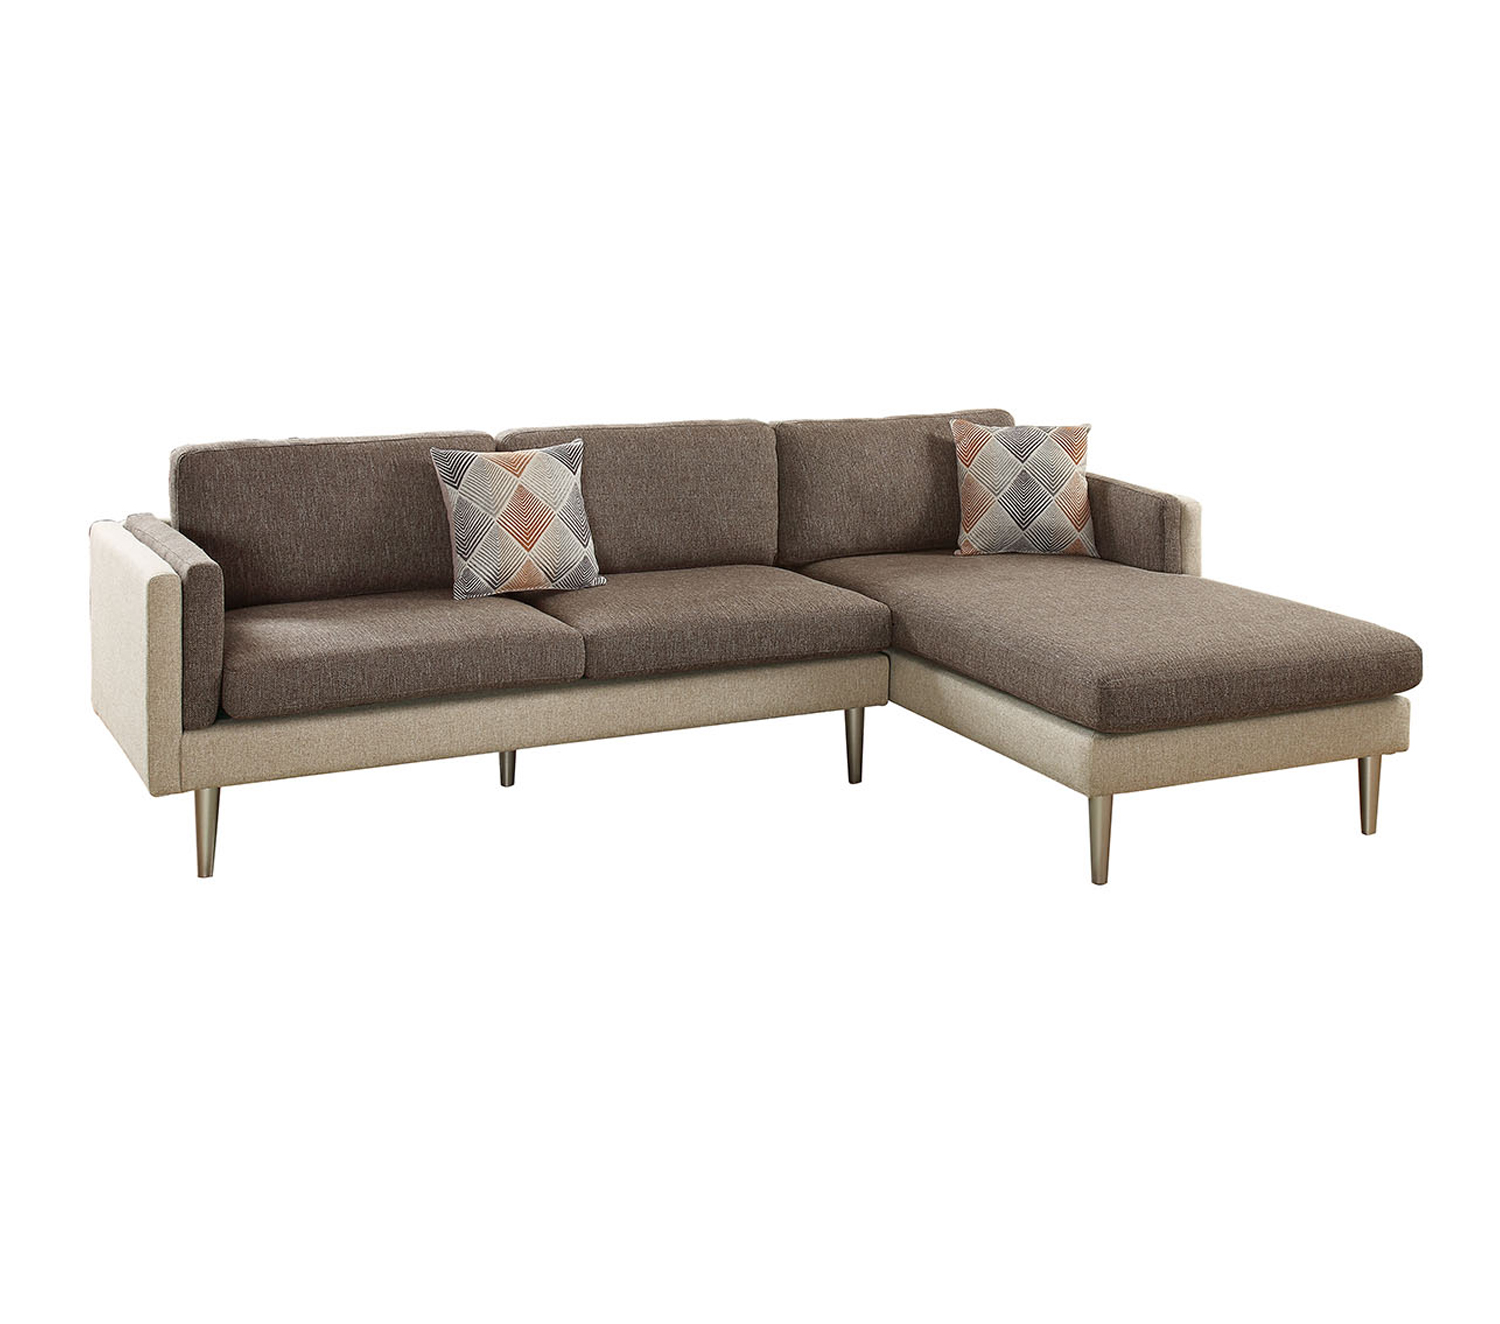 Bobkona Dreena Cotton Blend Polyfabric Sectional Two Tone in Ash Black and Sand. by Poundex